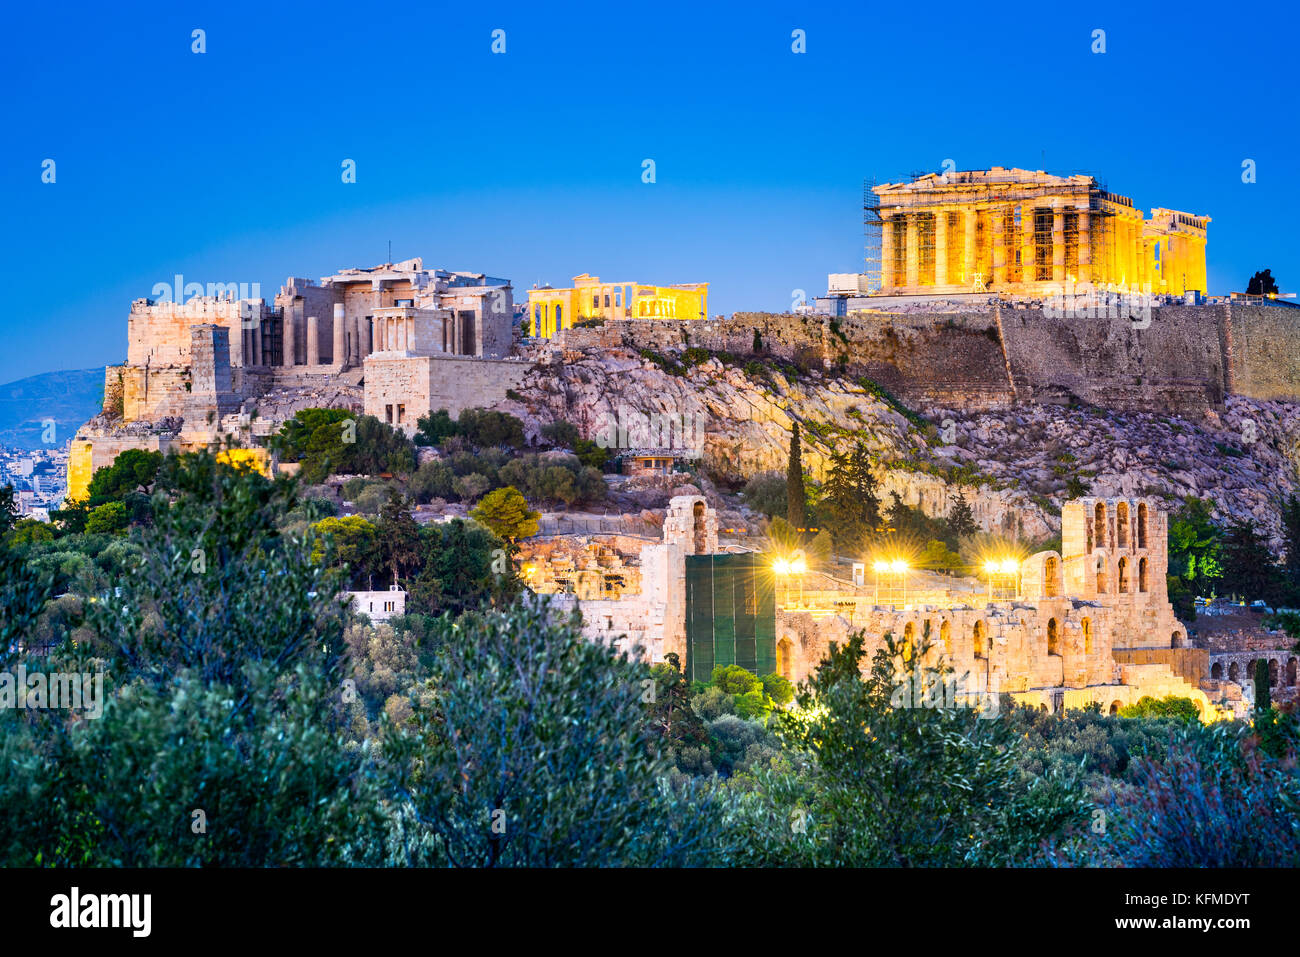 Athens, Greece - Night view of Acropolis, ancient citadel of Greek Civilization. - Stock Image